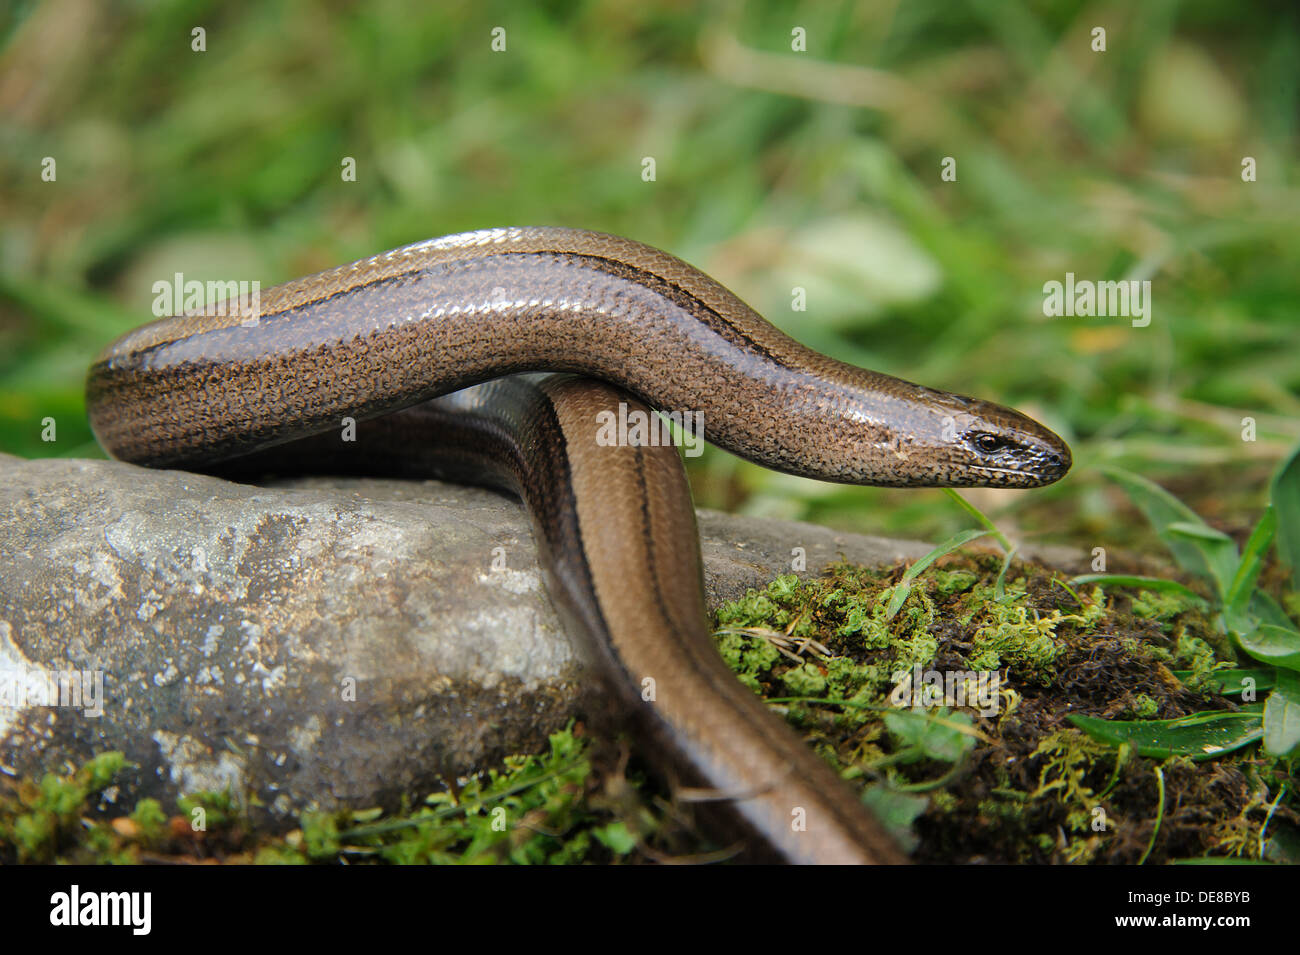 Female slow worm, Cumbria, UK (Anguis Fragilis) Stock Photo